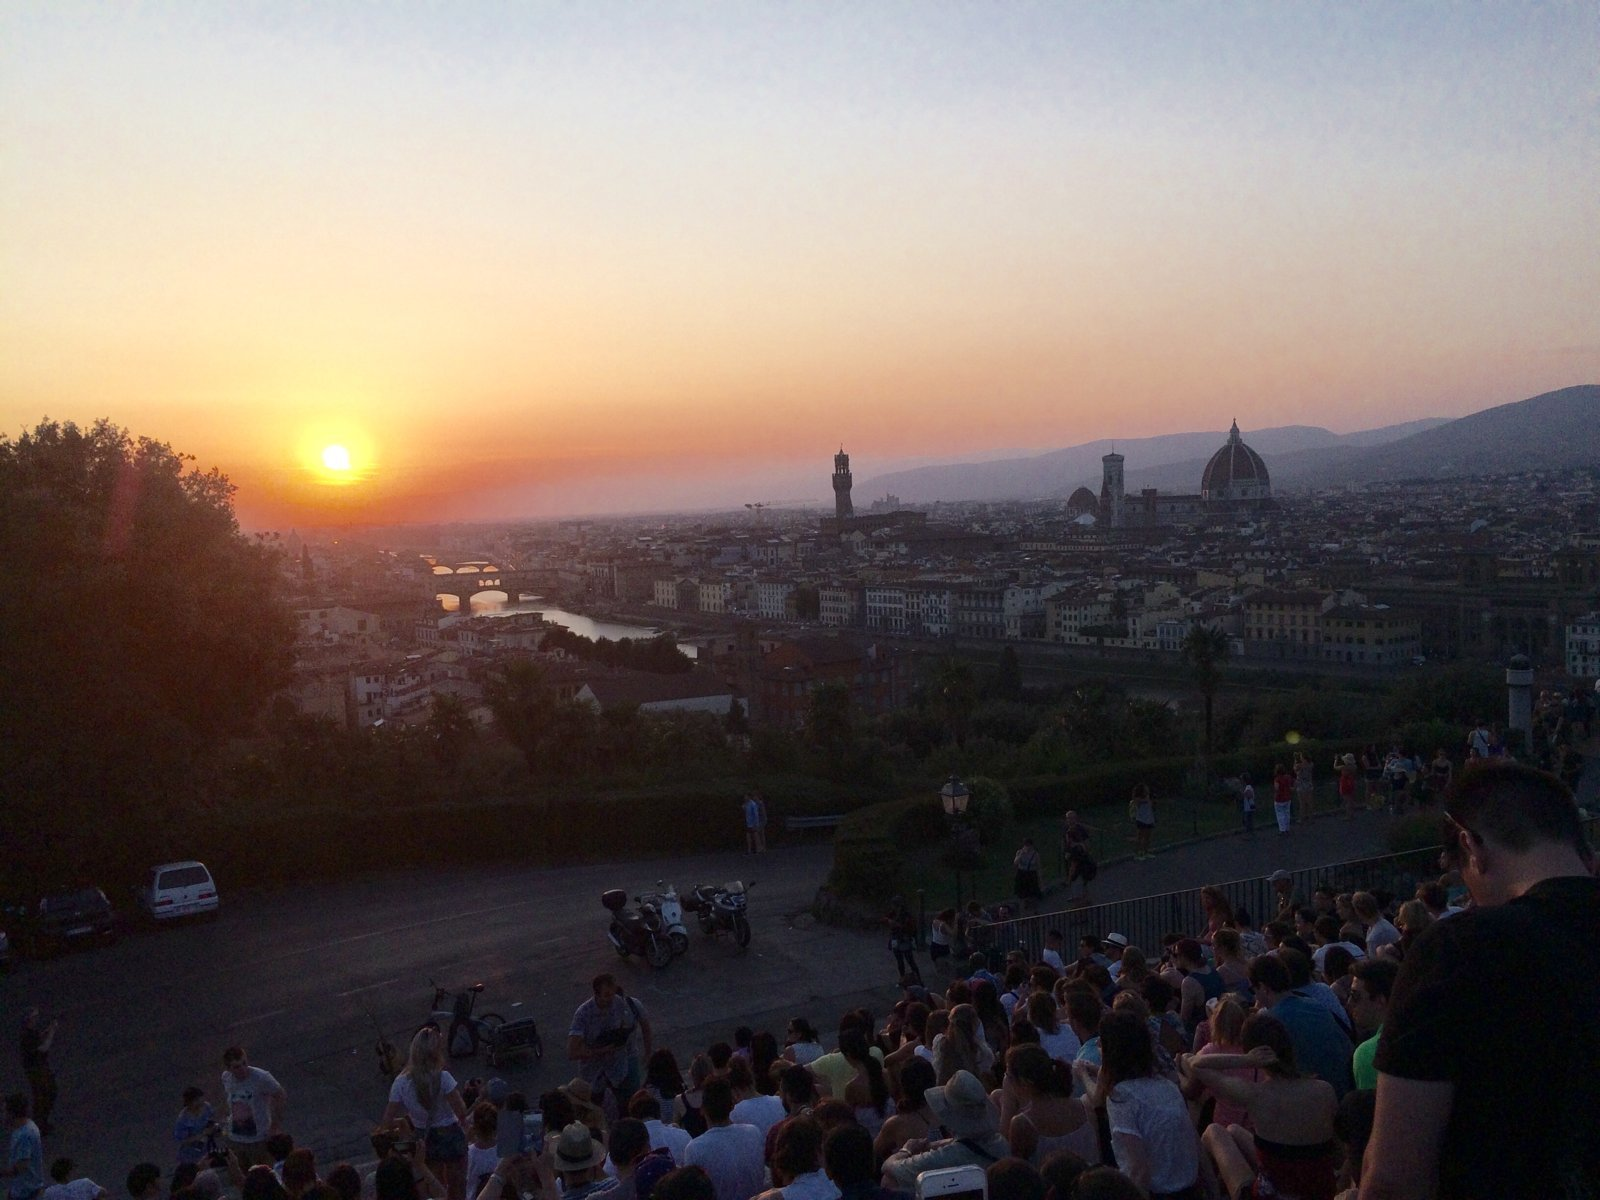 Sunset at Piazzale Michealangelo